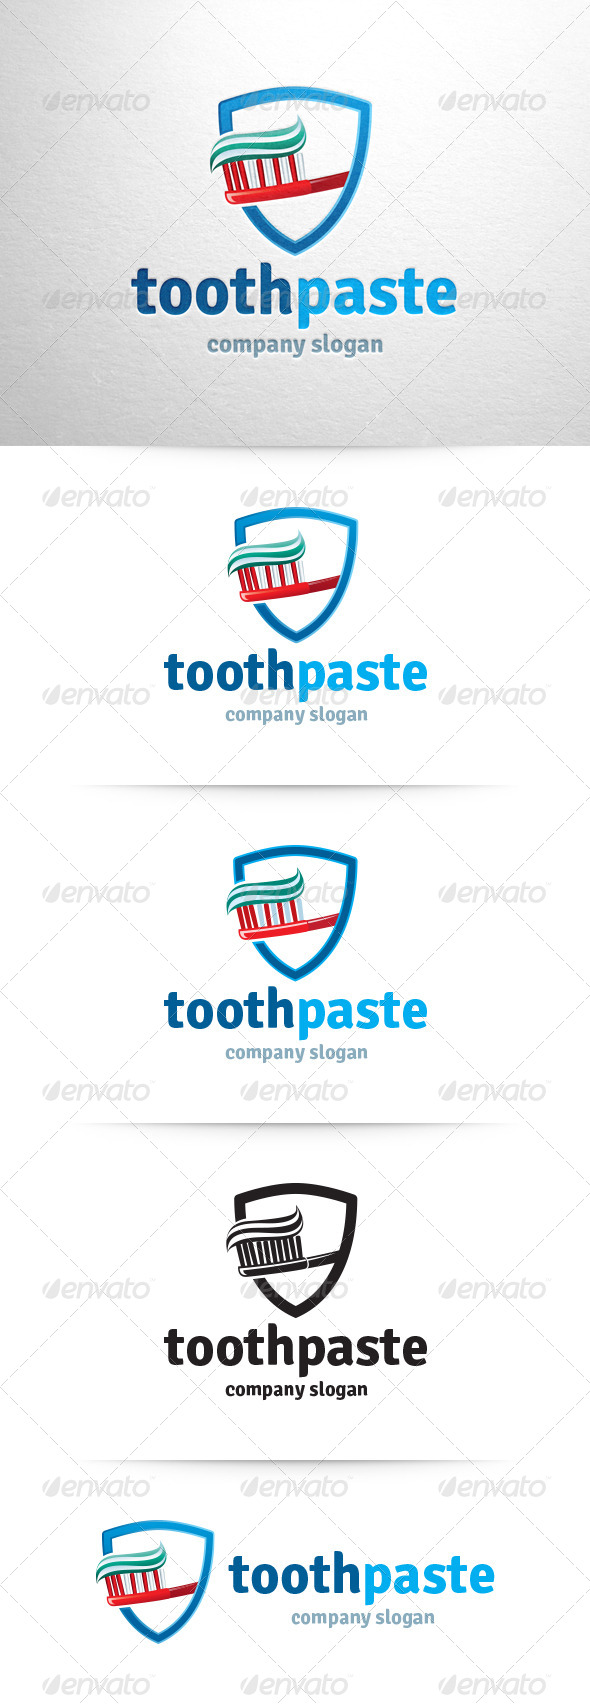 GraphicRiver Toothpaste Logo Template 6542810